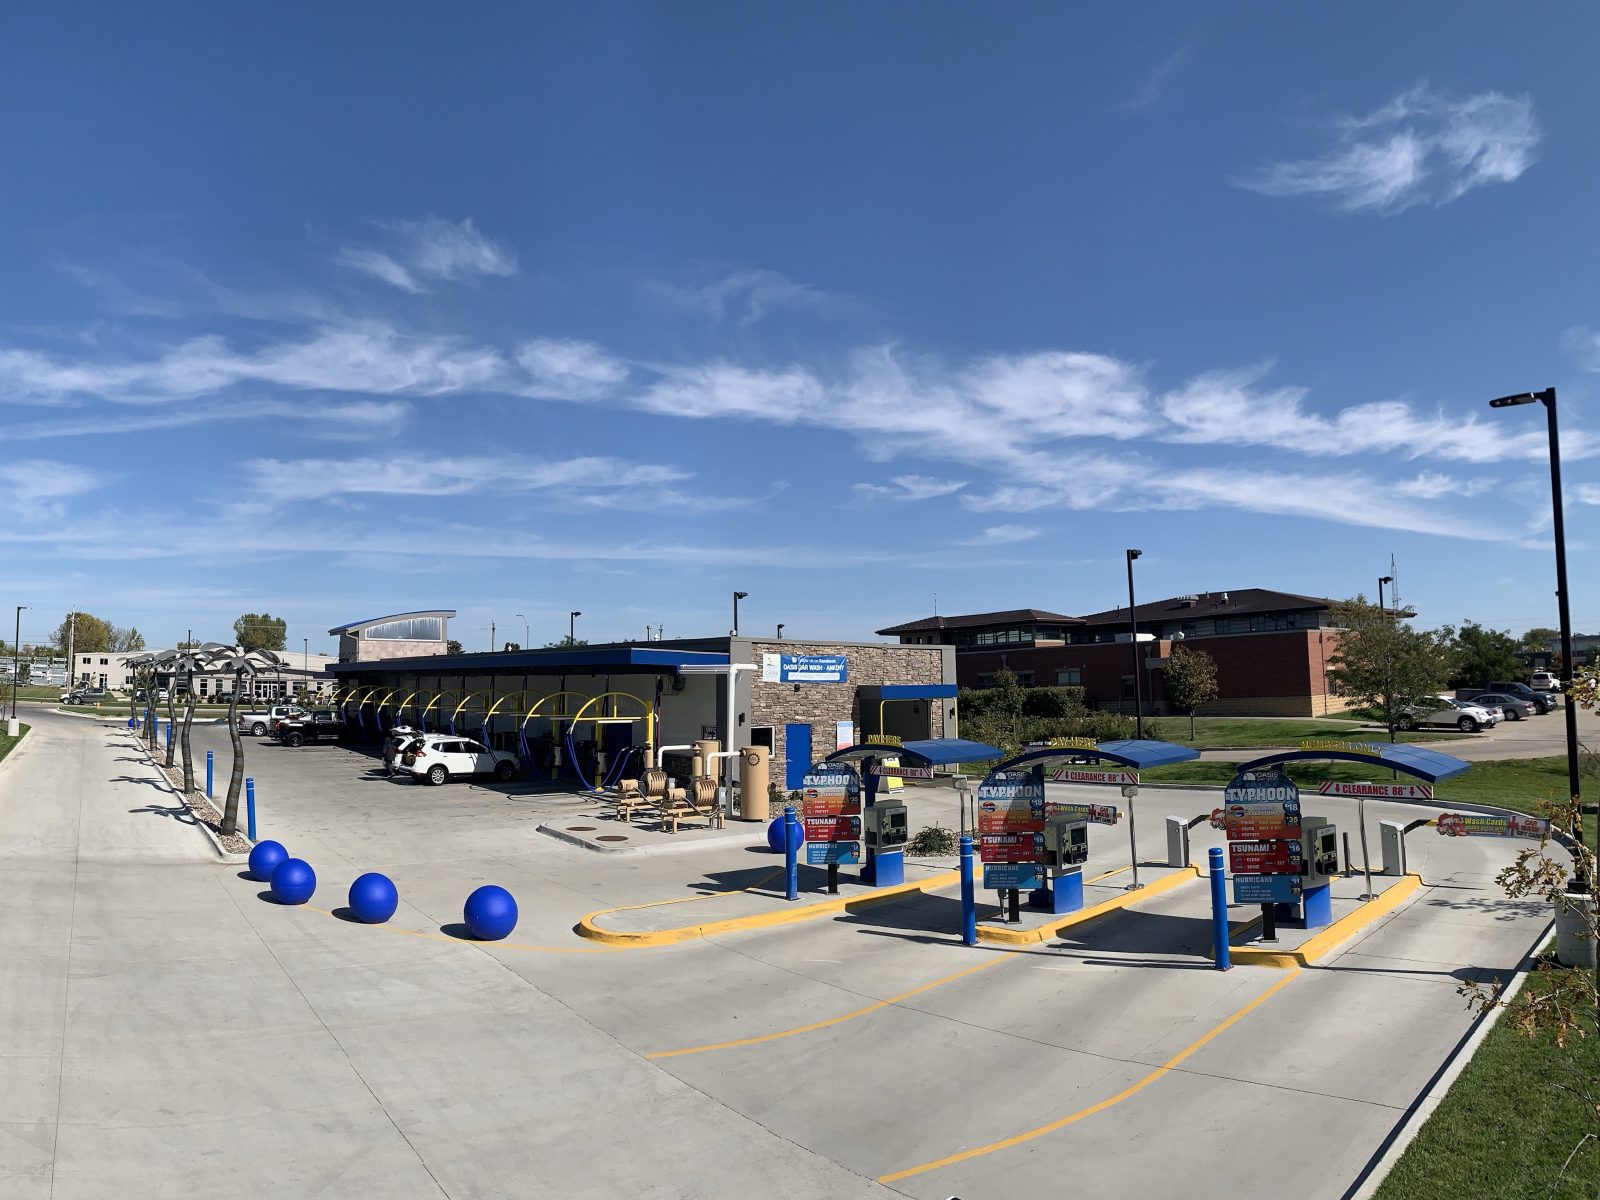 Oasis car wash on a beautiful day with cars ready to be washed